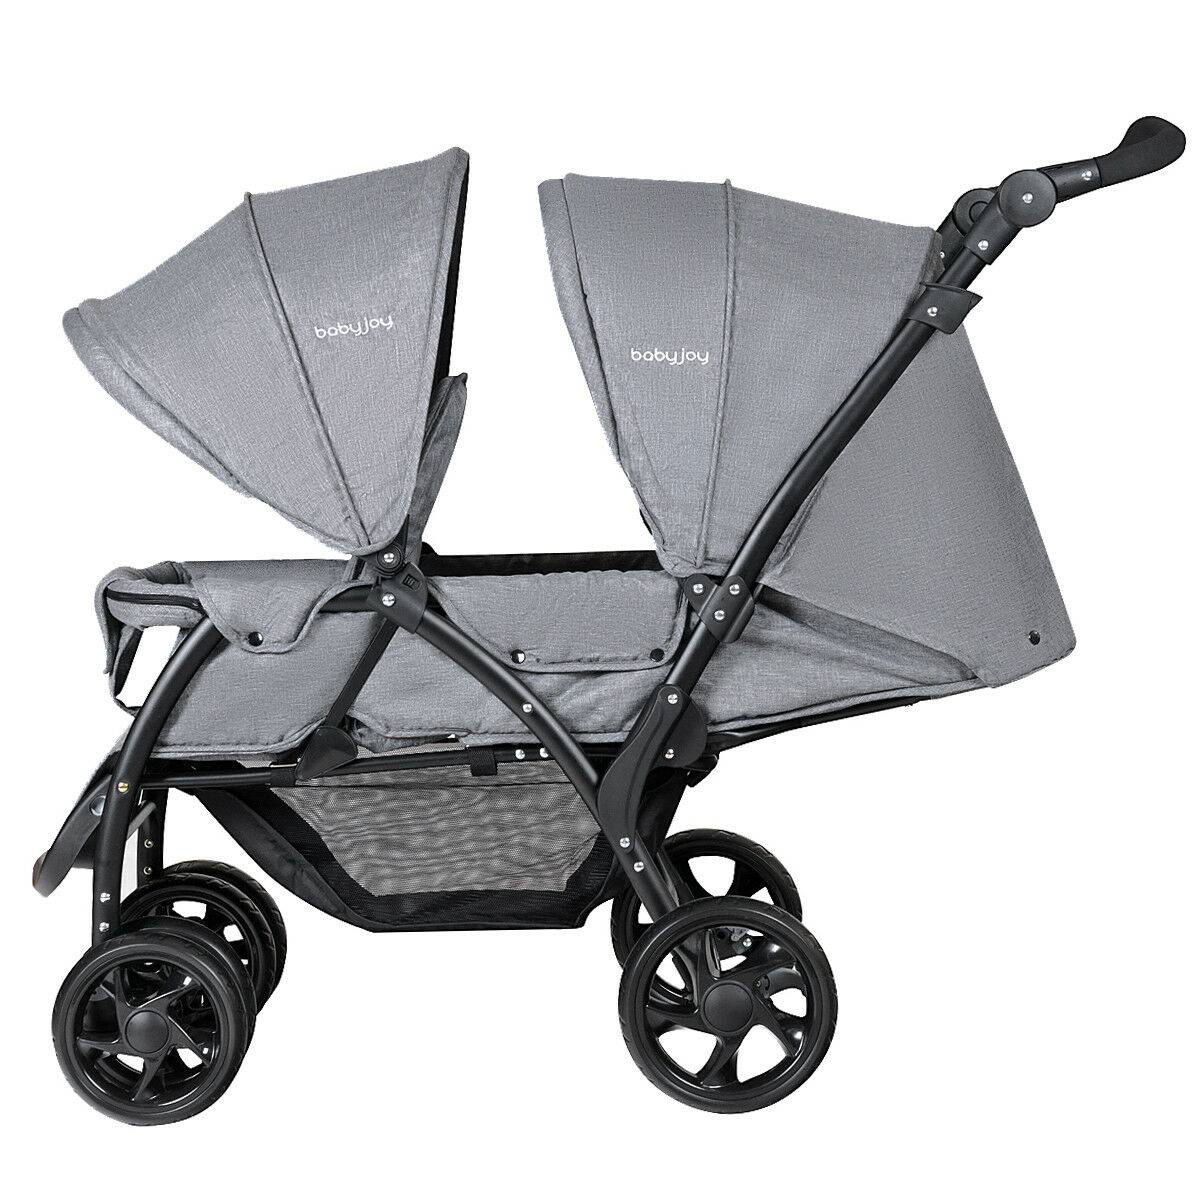 https://hotstarstore.com Foldable Double Baby Stroller Stand On Front & Back Seats Pushchair Gray Hot Star Store